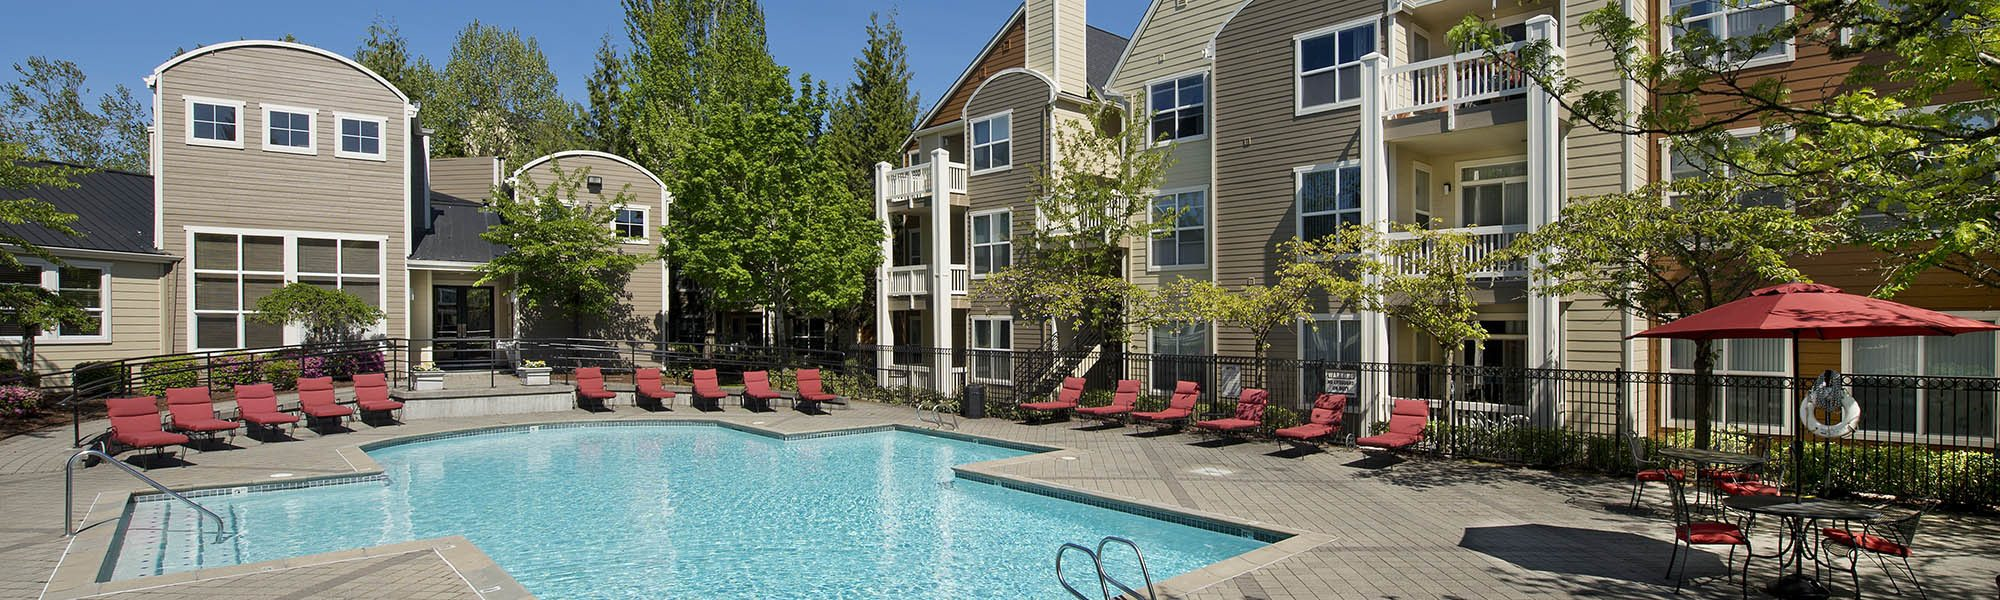 Read reviews of Center Pointe Apartment Homes on our website